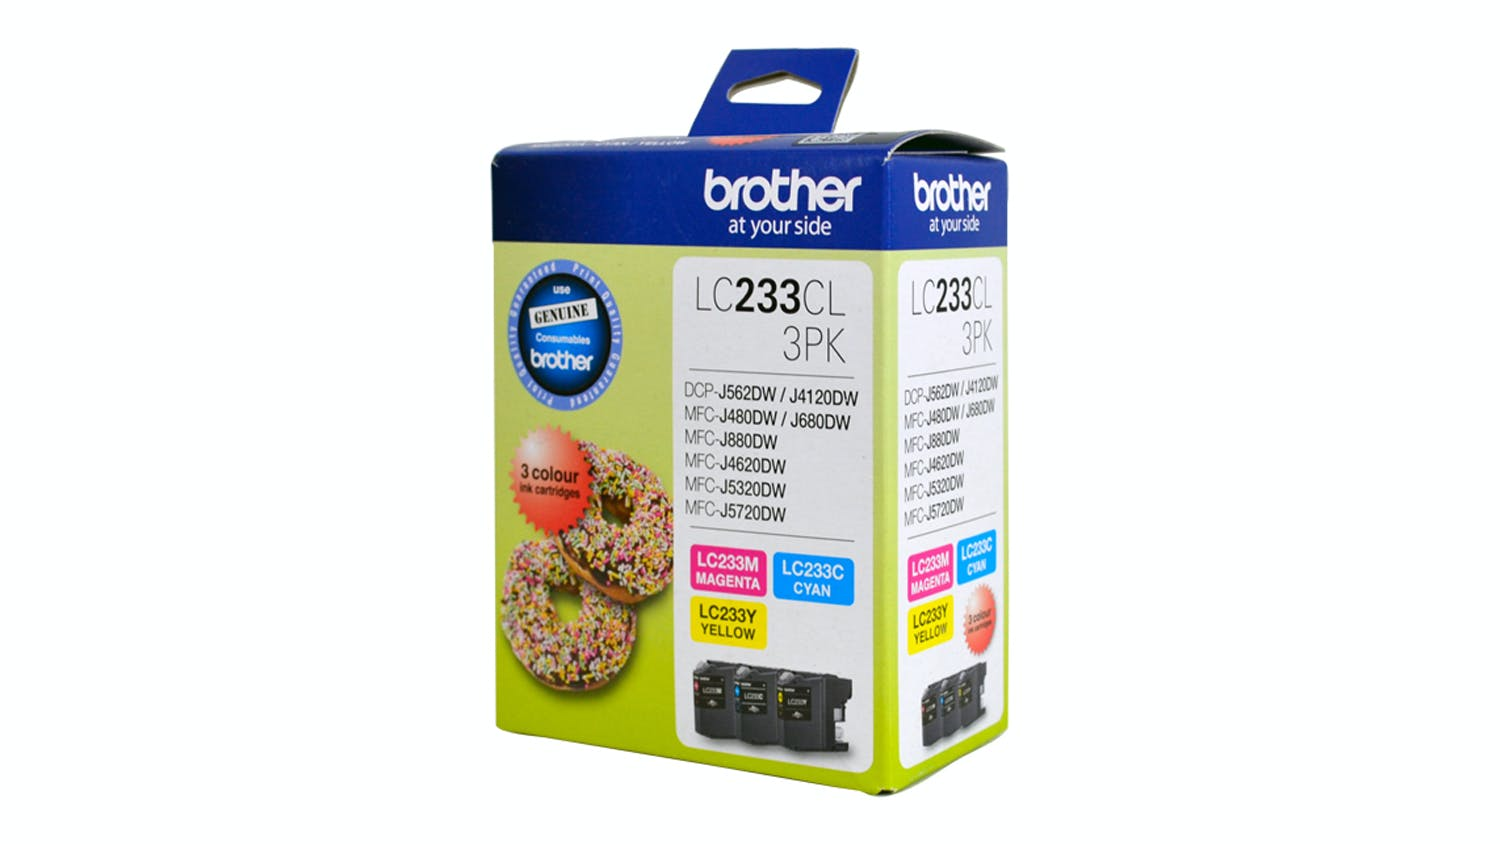 Brother LC233CL3PK Colour Ink Cartridge - 3 Pack